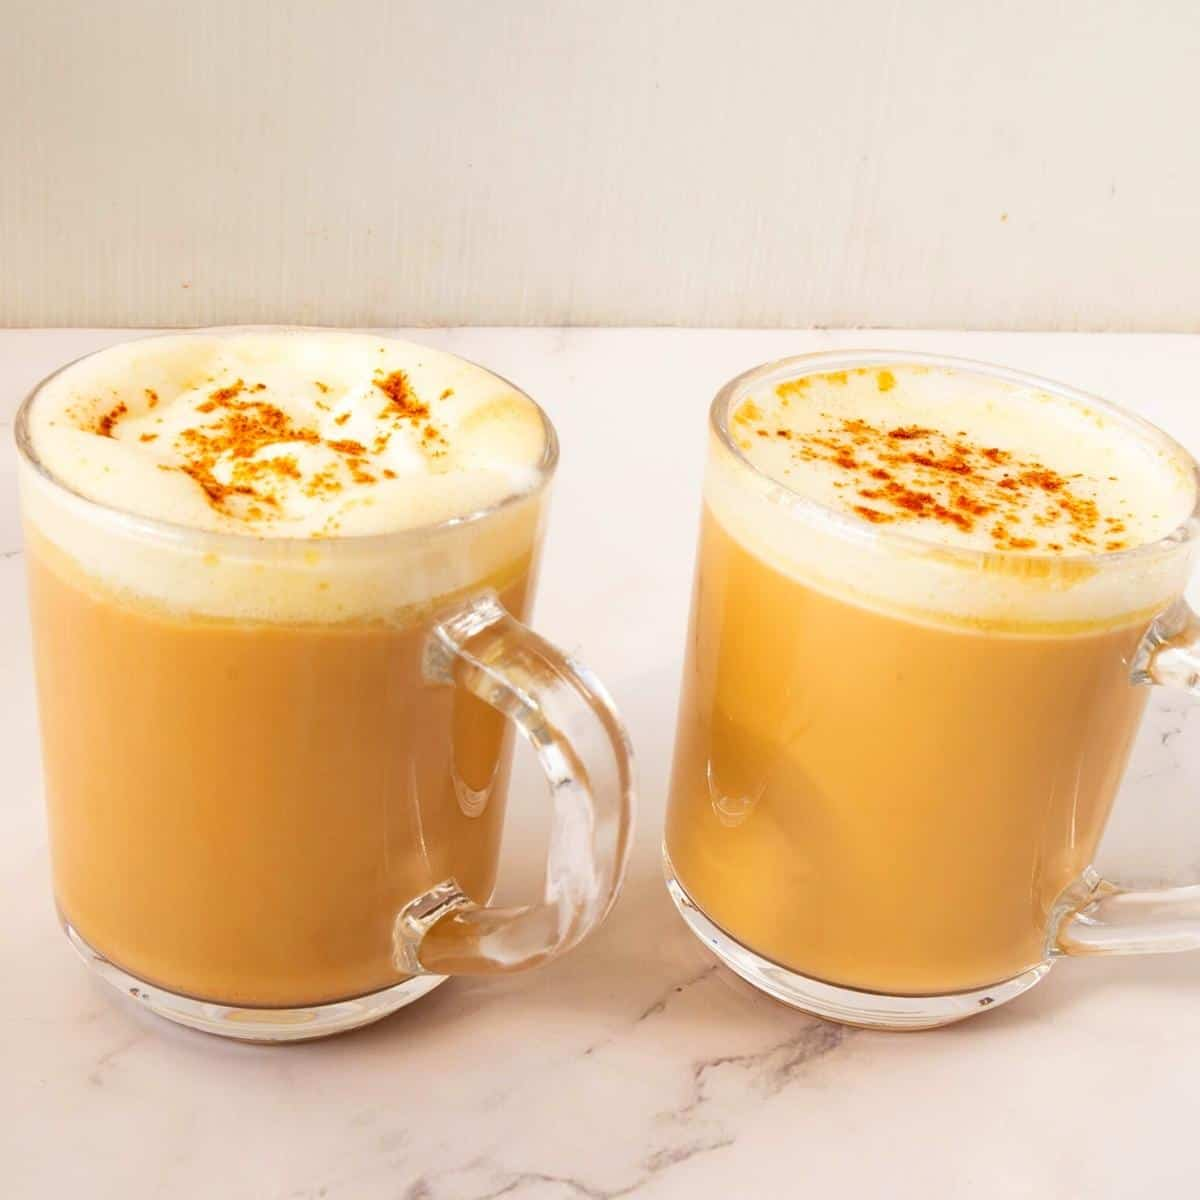 Two cups with latte using chai spice.